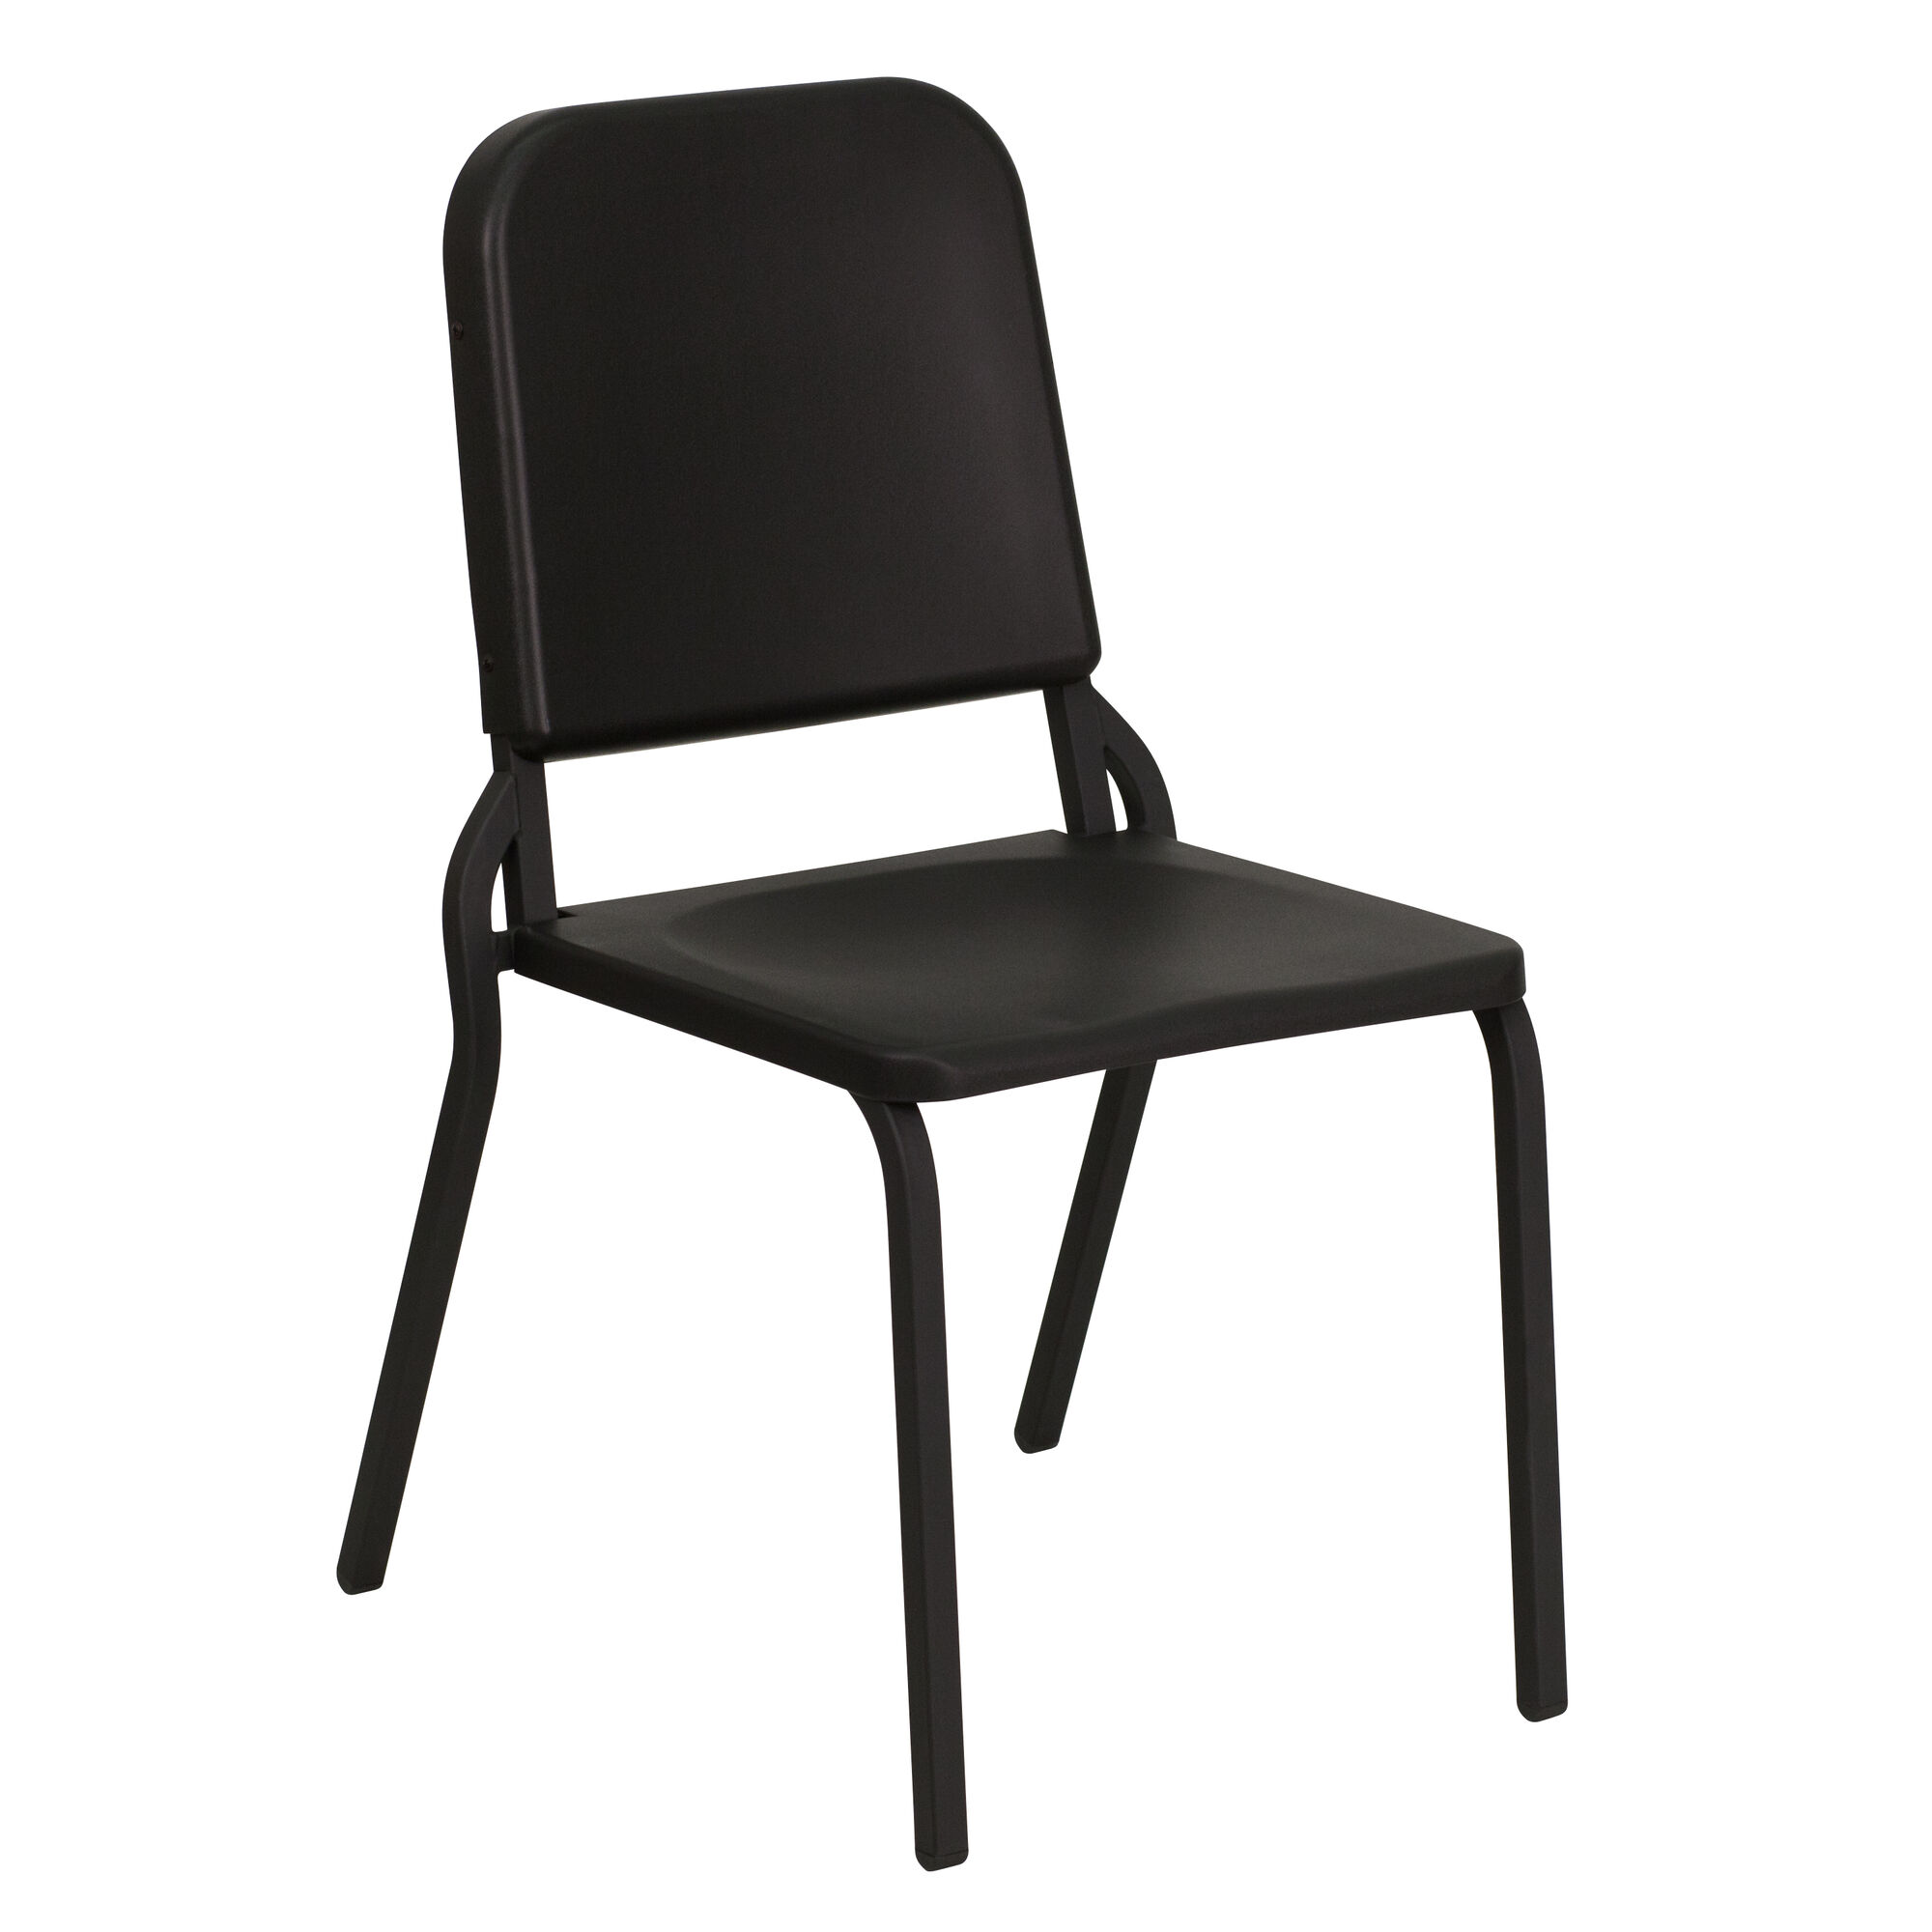 Groovy Hercules Series Black High Density Stackable Melody Band Music Chair Cjindustries Chair Design For Home Cjindustriesco